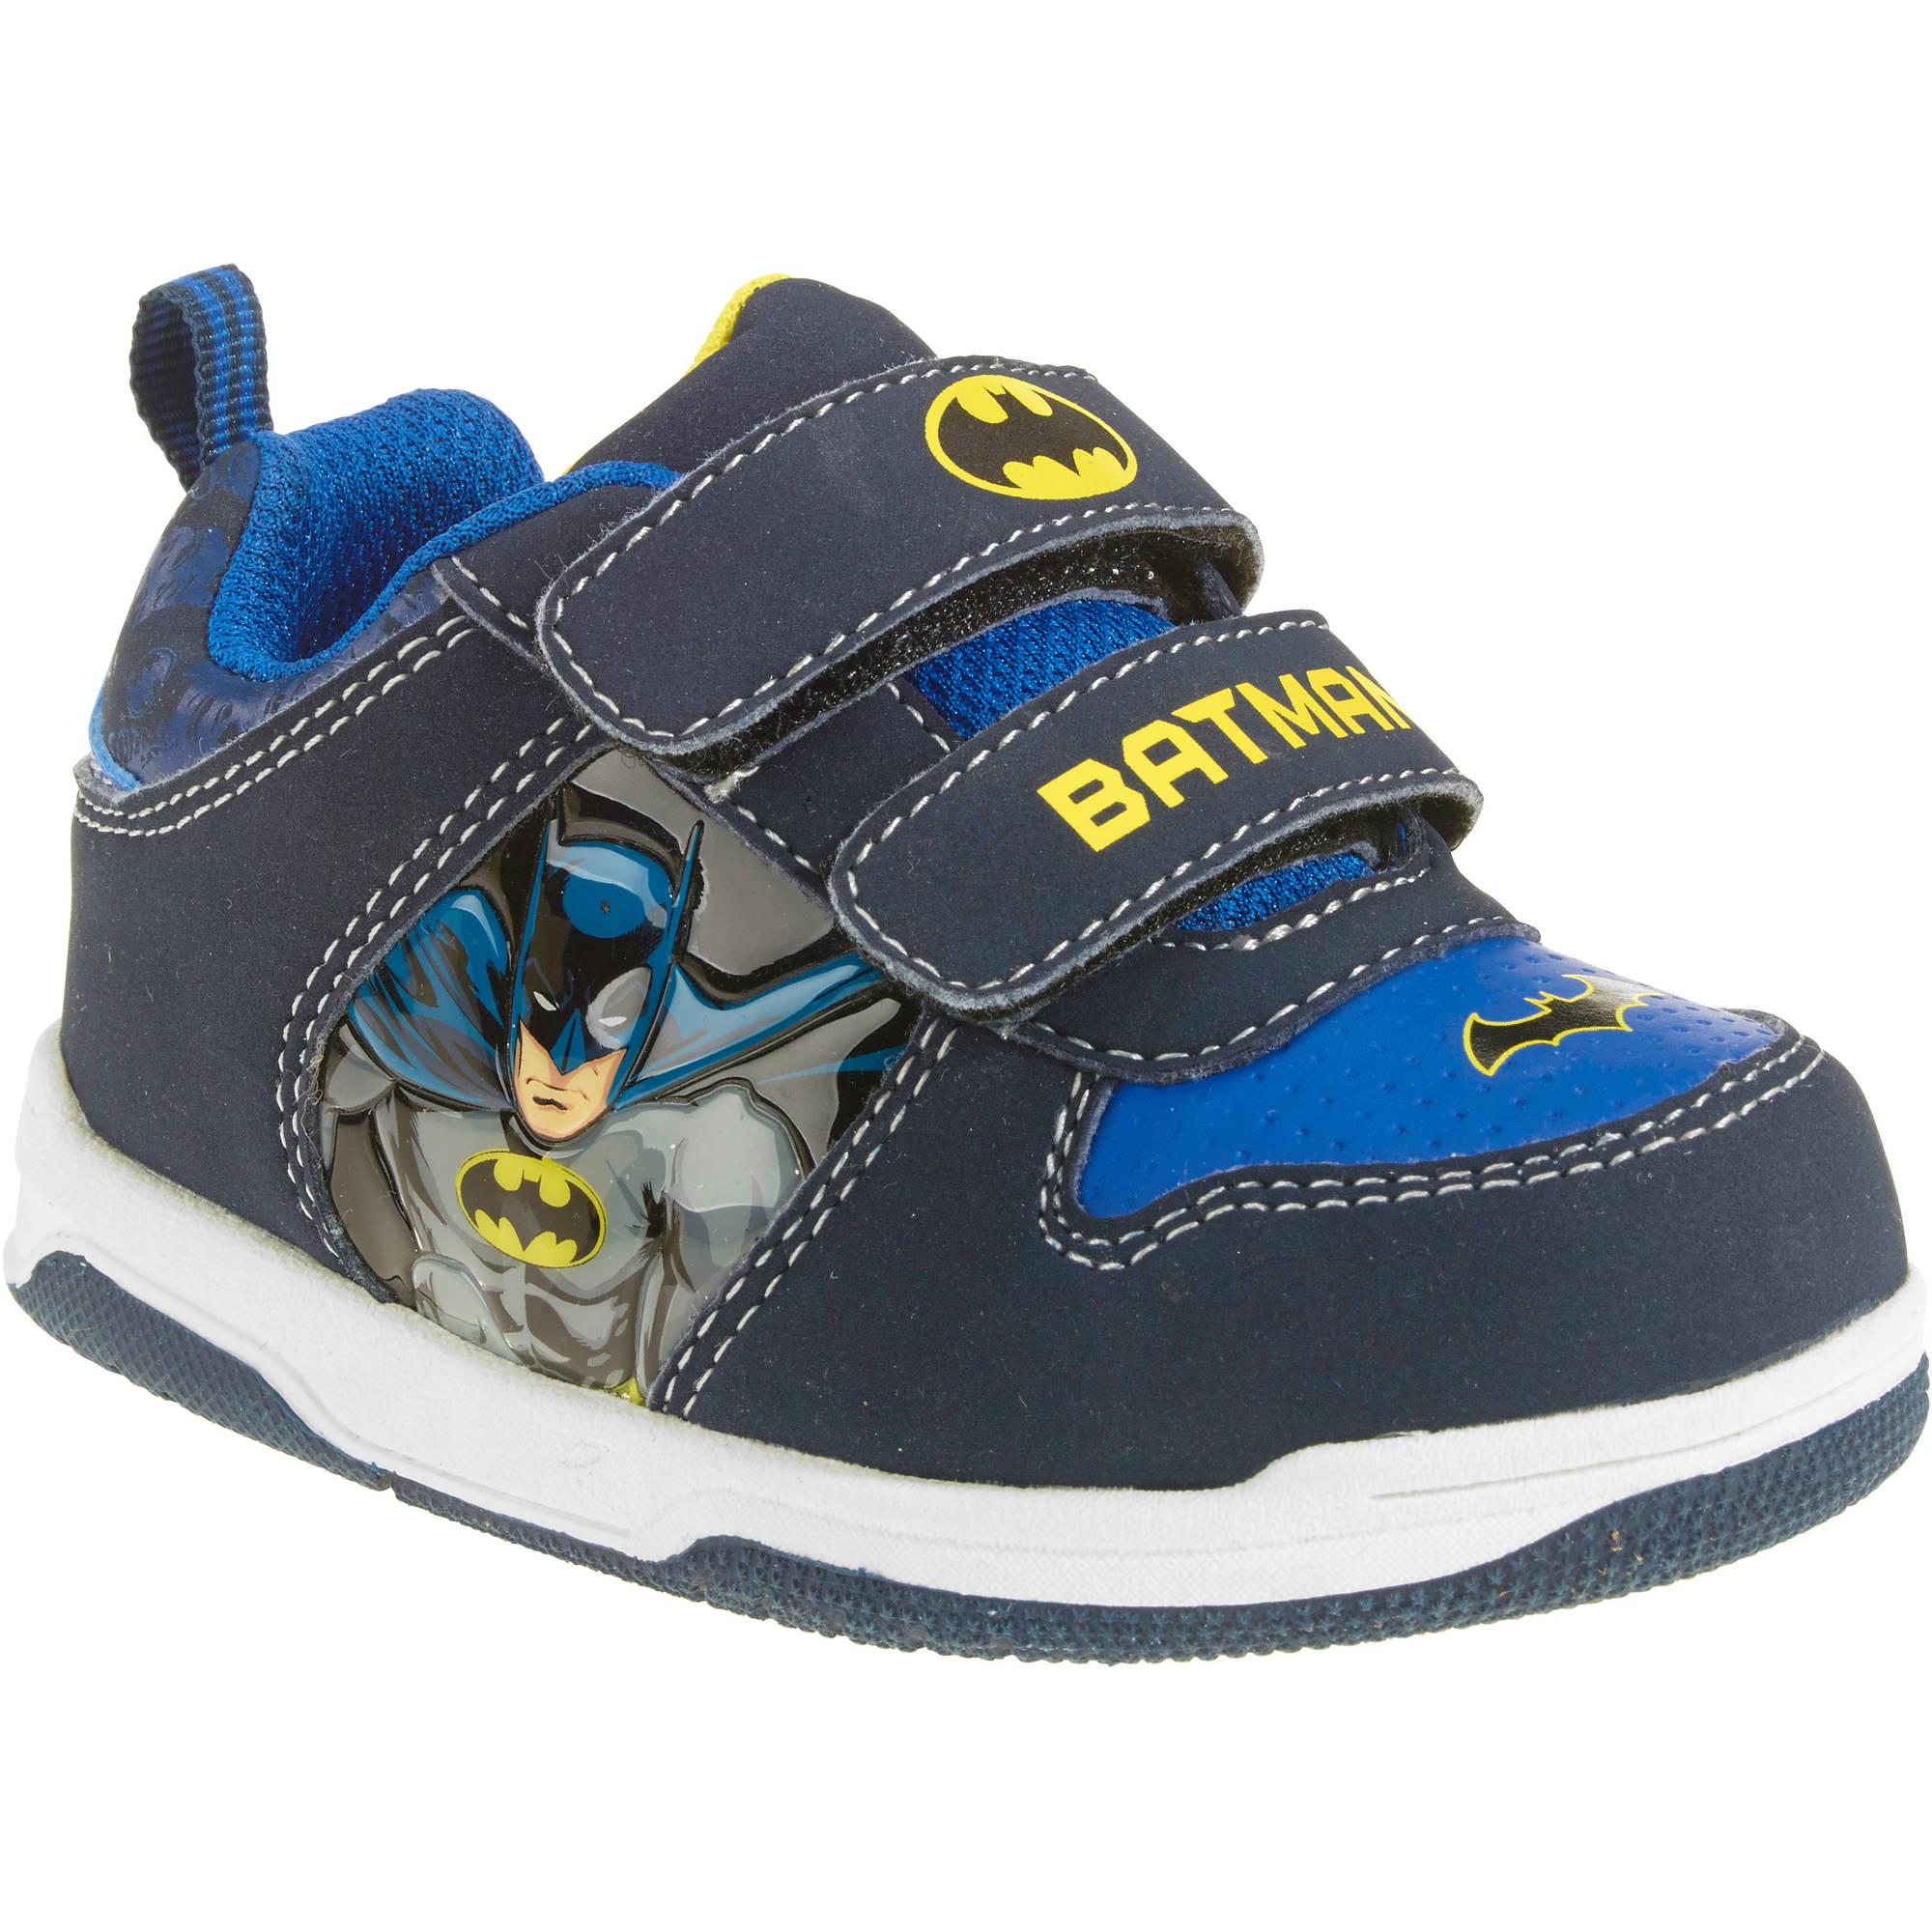 Batman Toddler Boys' Skate Sneaker